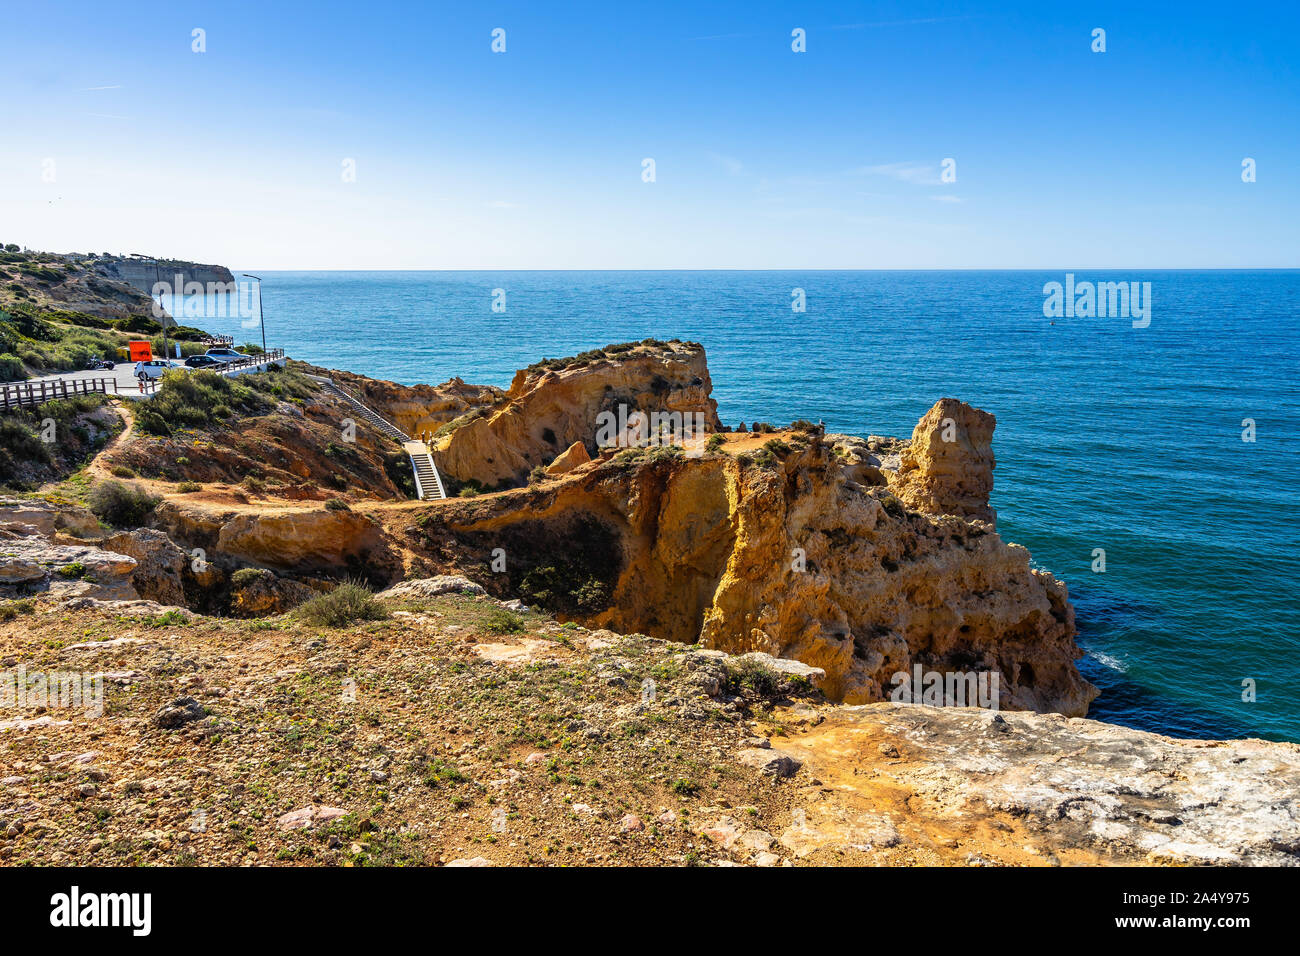 Algar Seco is fascinating cliff formations that have been carved out of the limestone bedrock, Carvoeiro, Algarve, Portugal Stock Photo